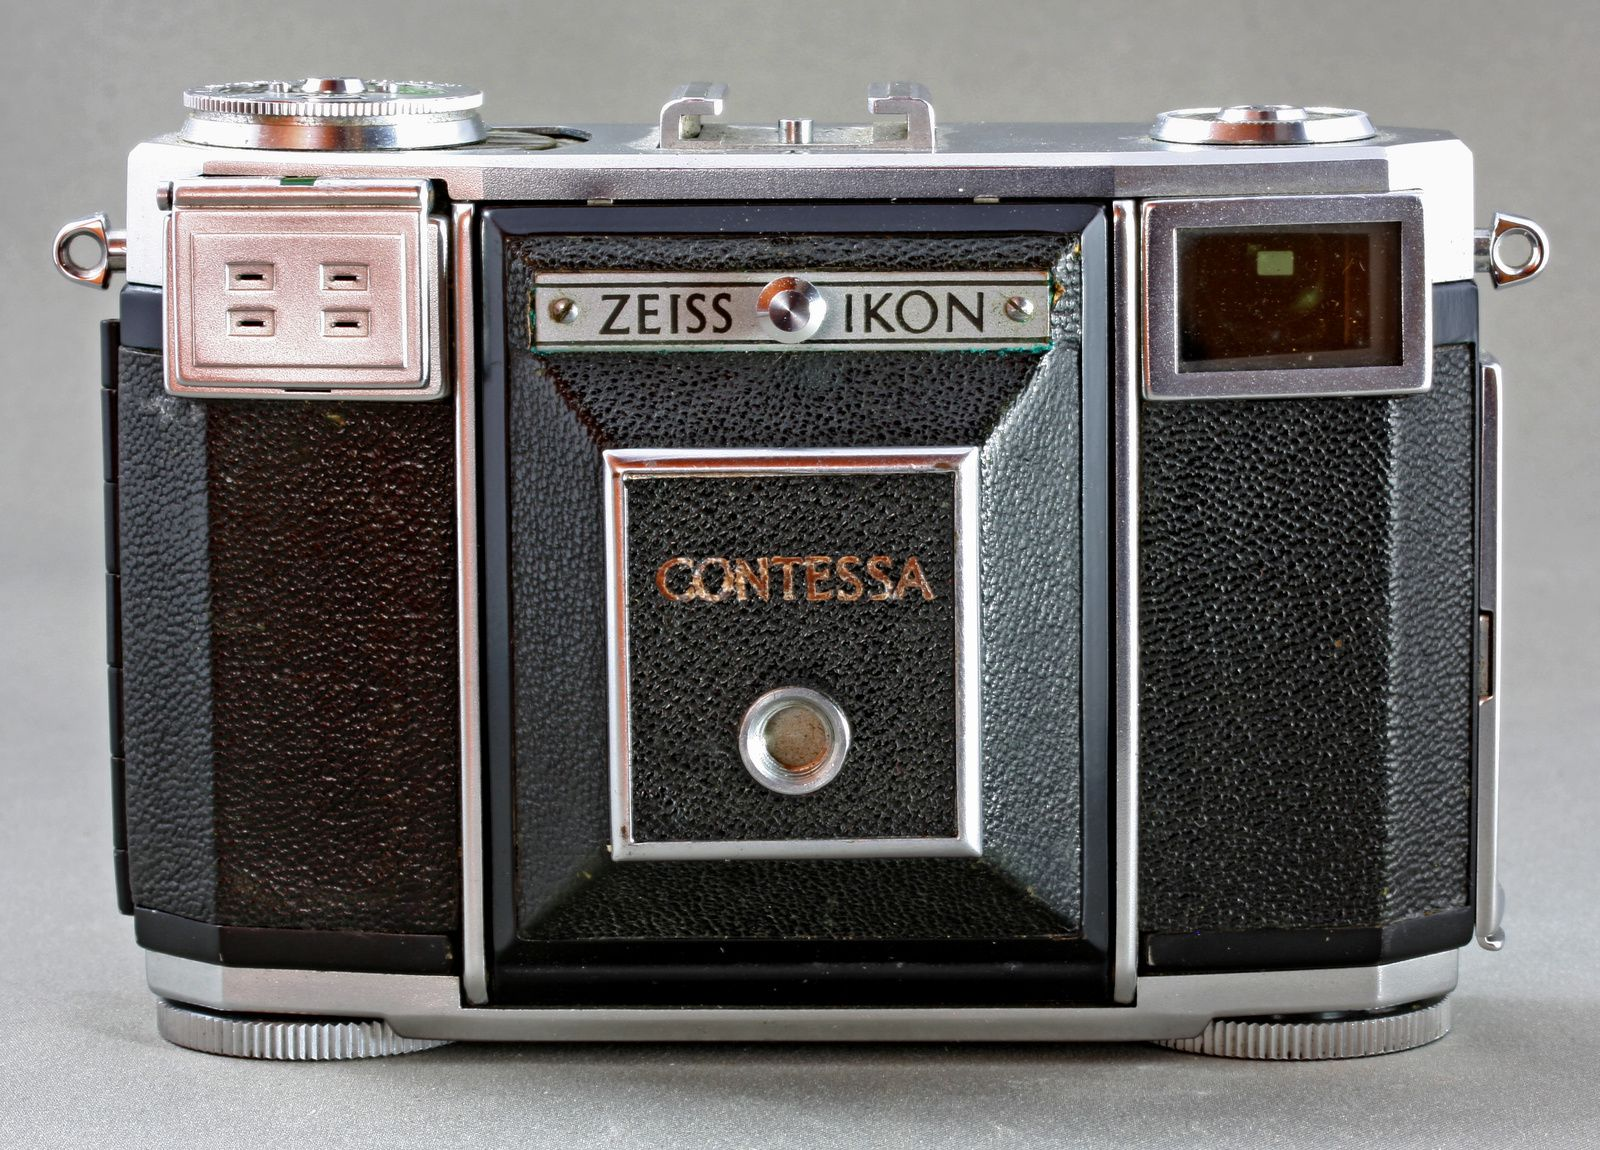 Zeiss-Ikon, Contessa 35